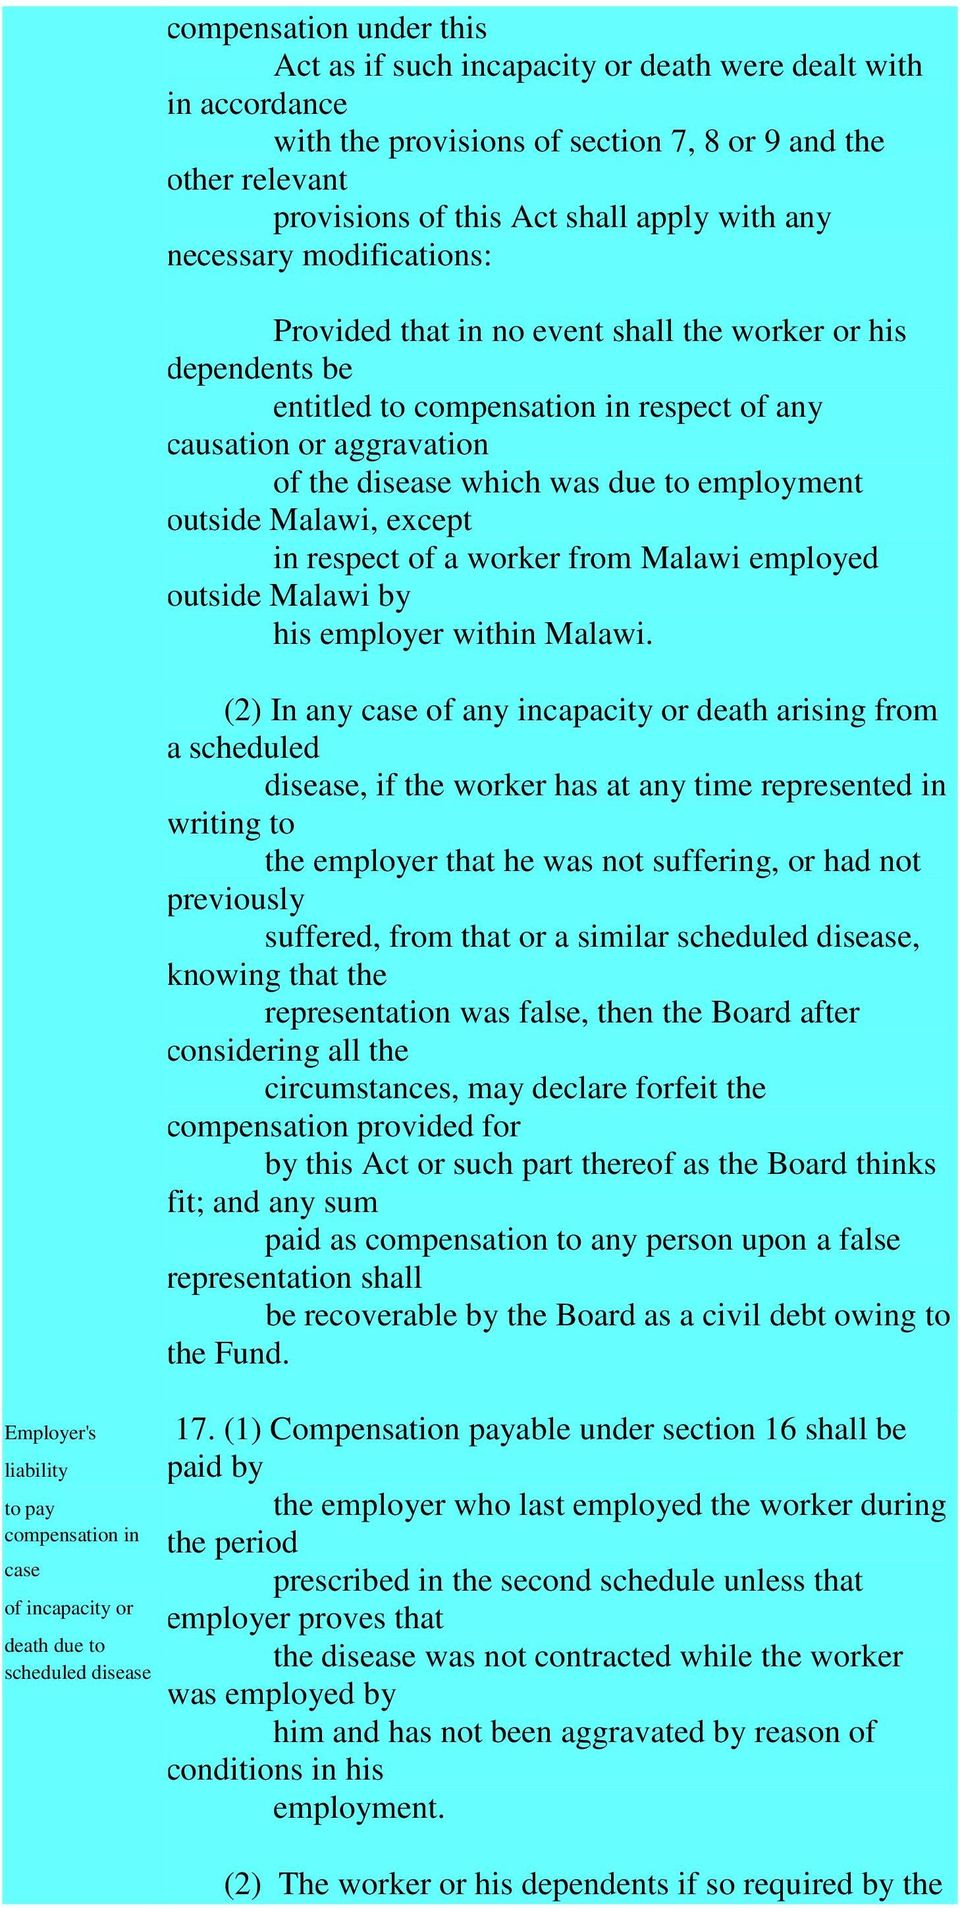 compensation in respect of any causation or aggravation of the disease which was due to employment outside Malawi, except in respect of a worker from Malawi employed outside Malawi by his employer